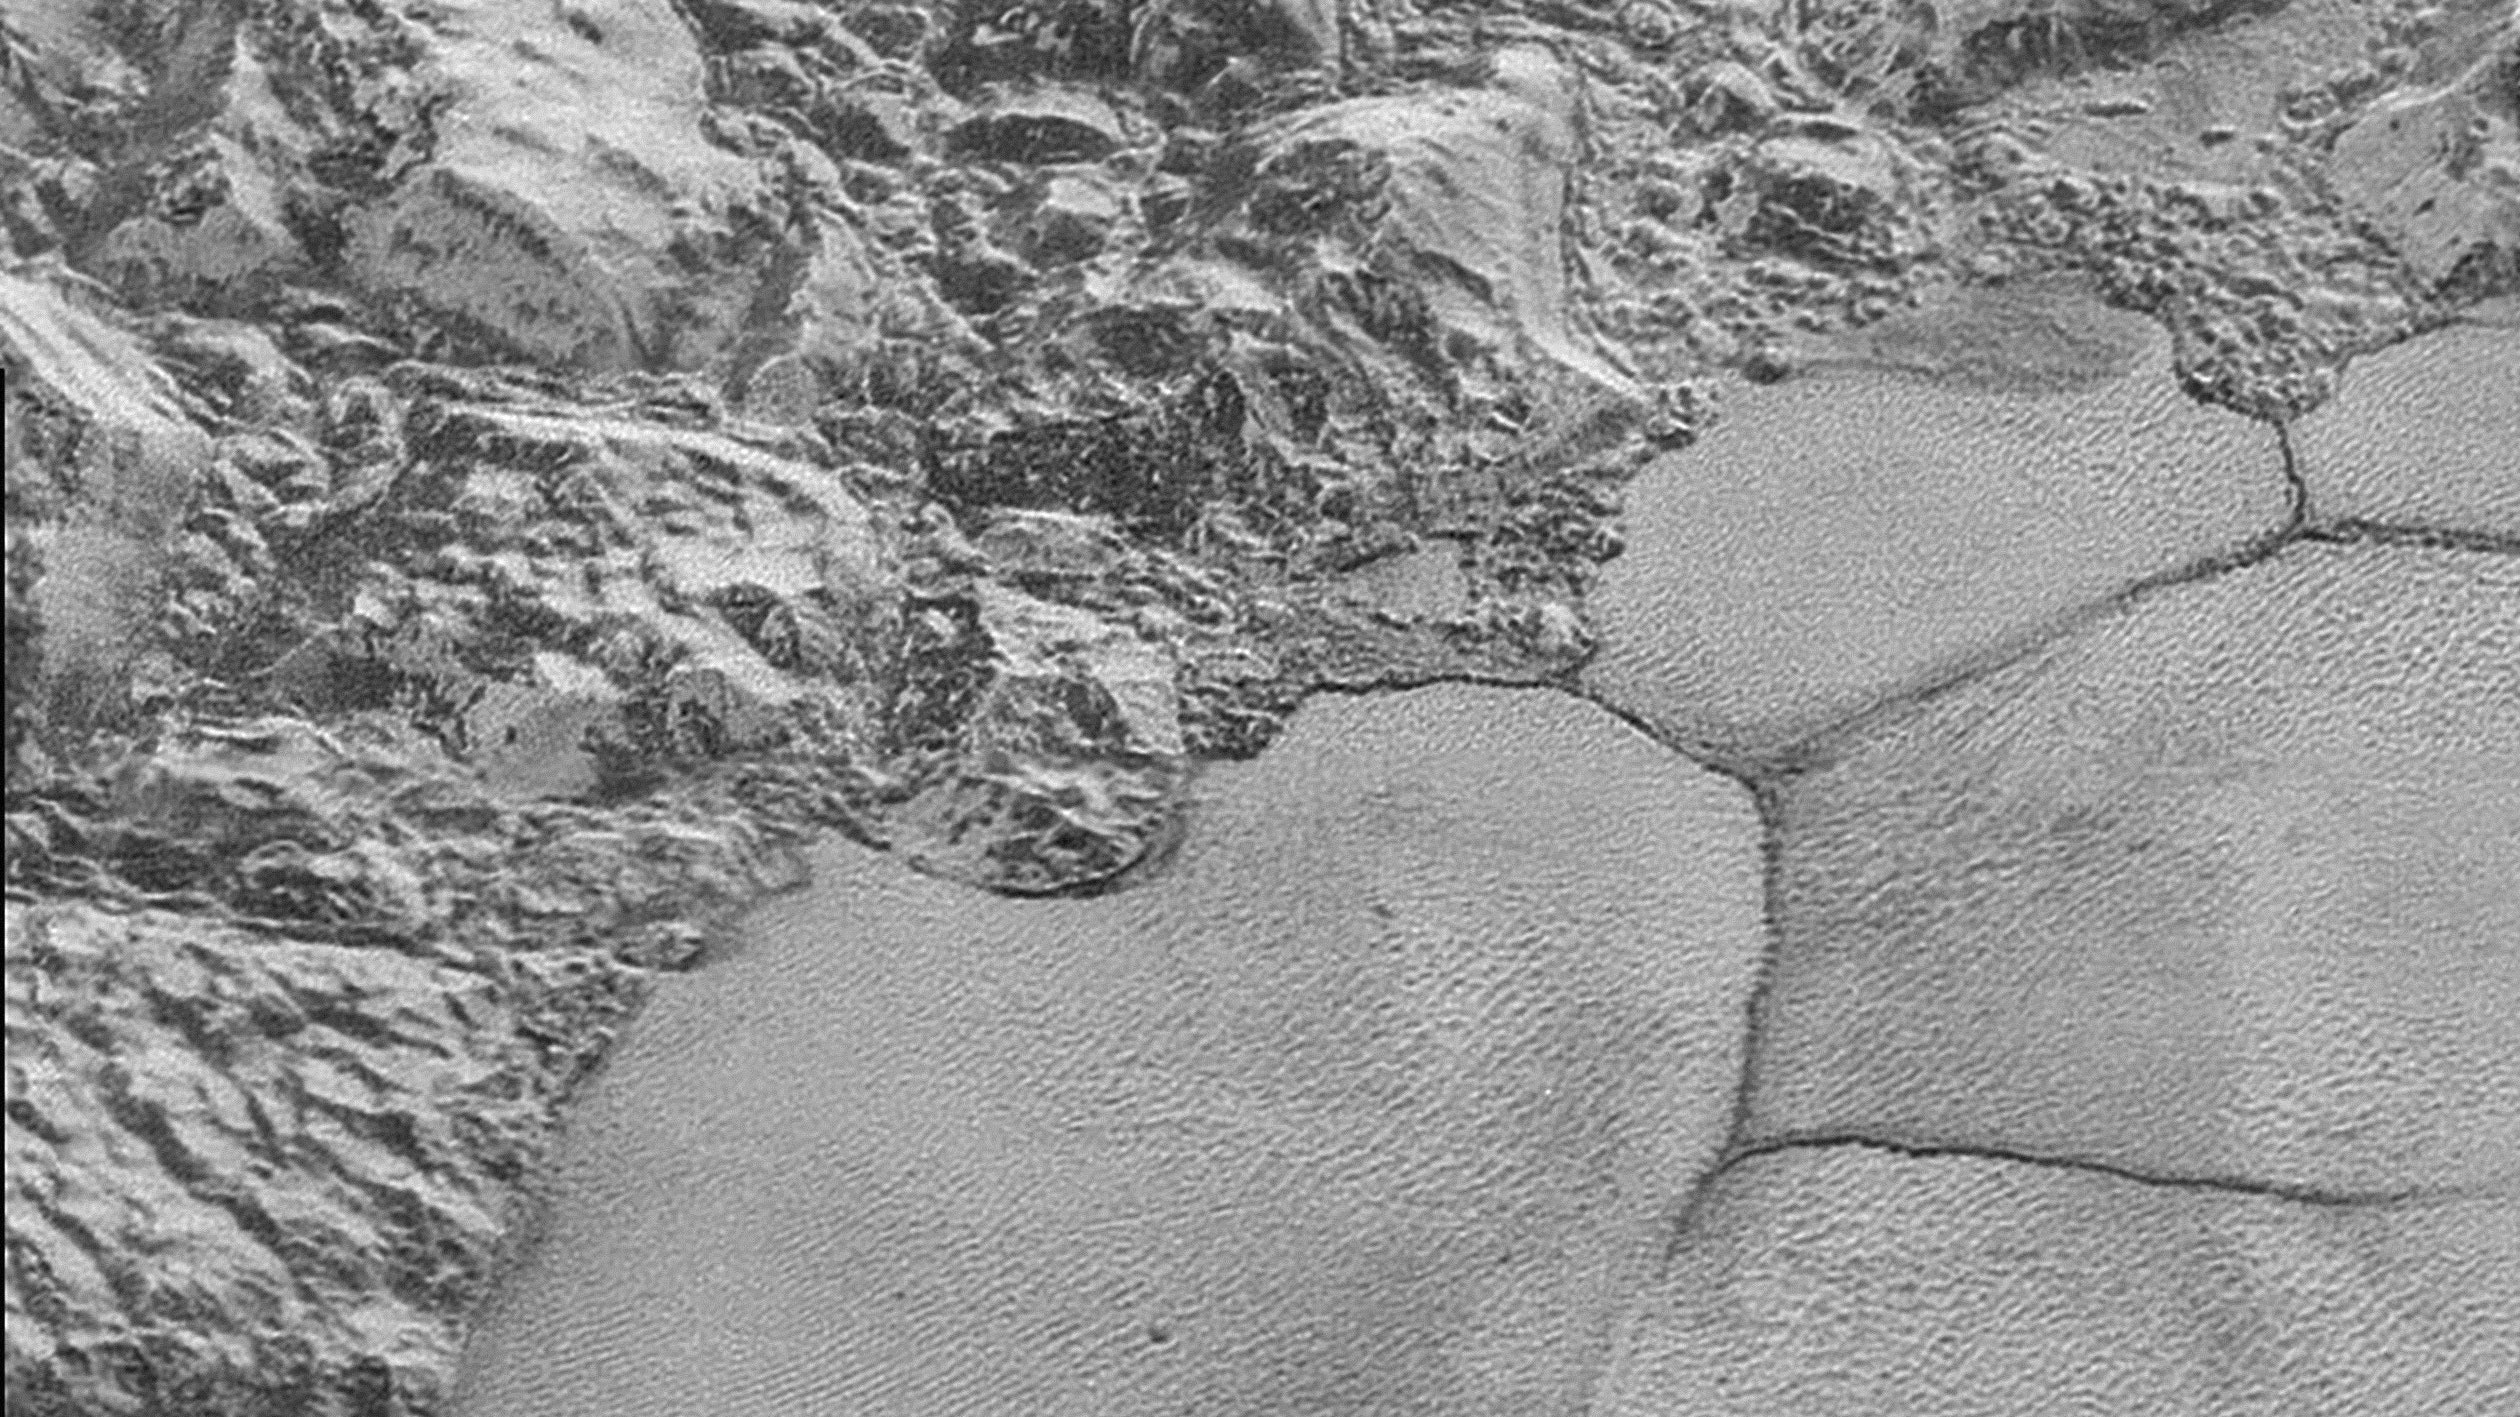 Wondrous dunes on Pluto are made of grains of frozen methane